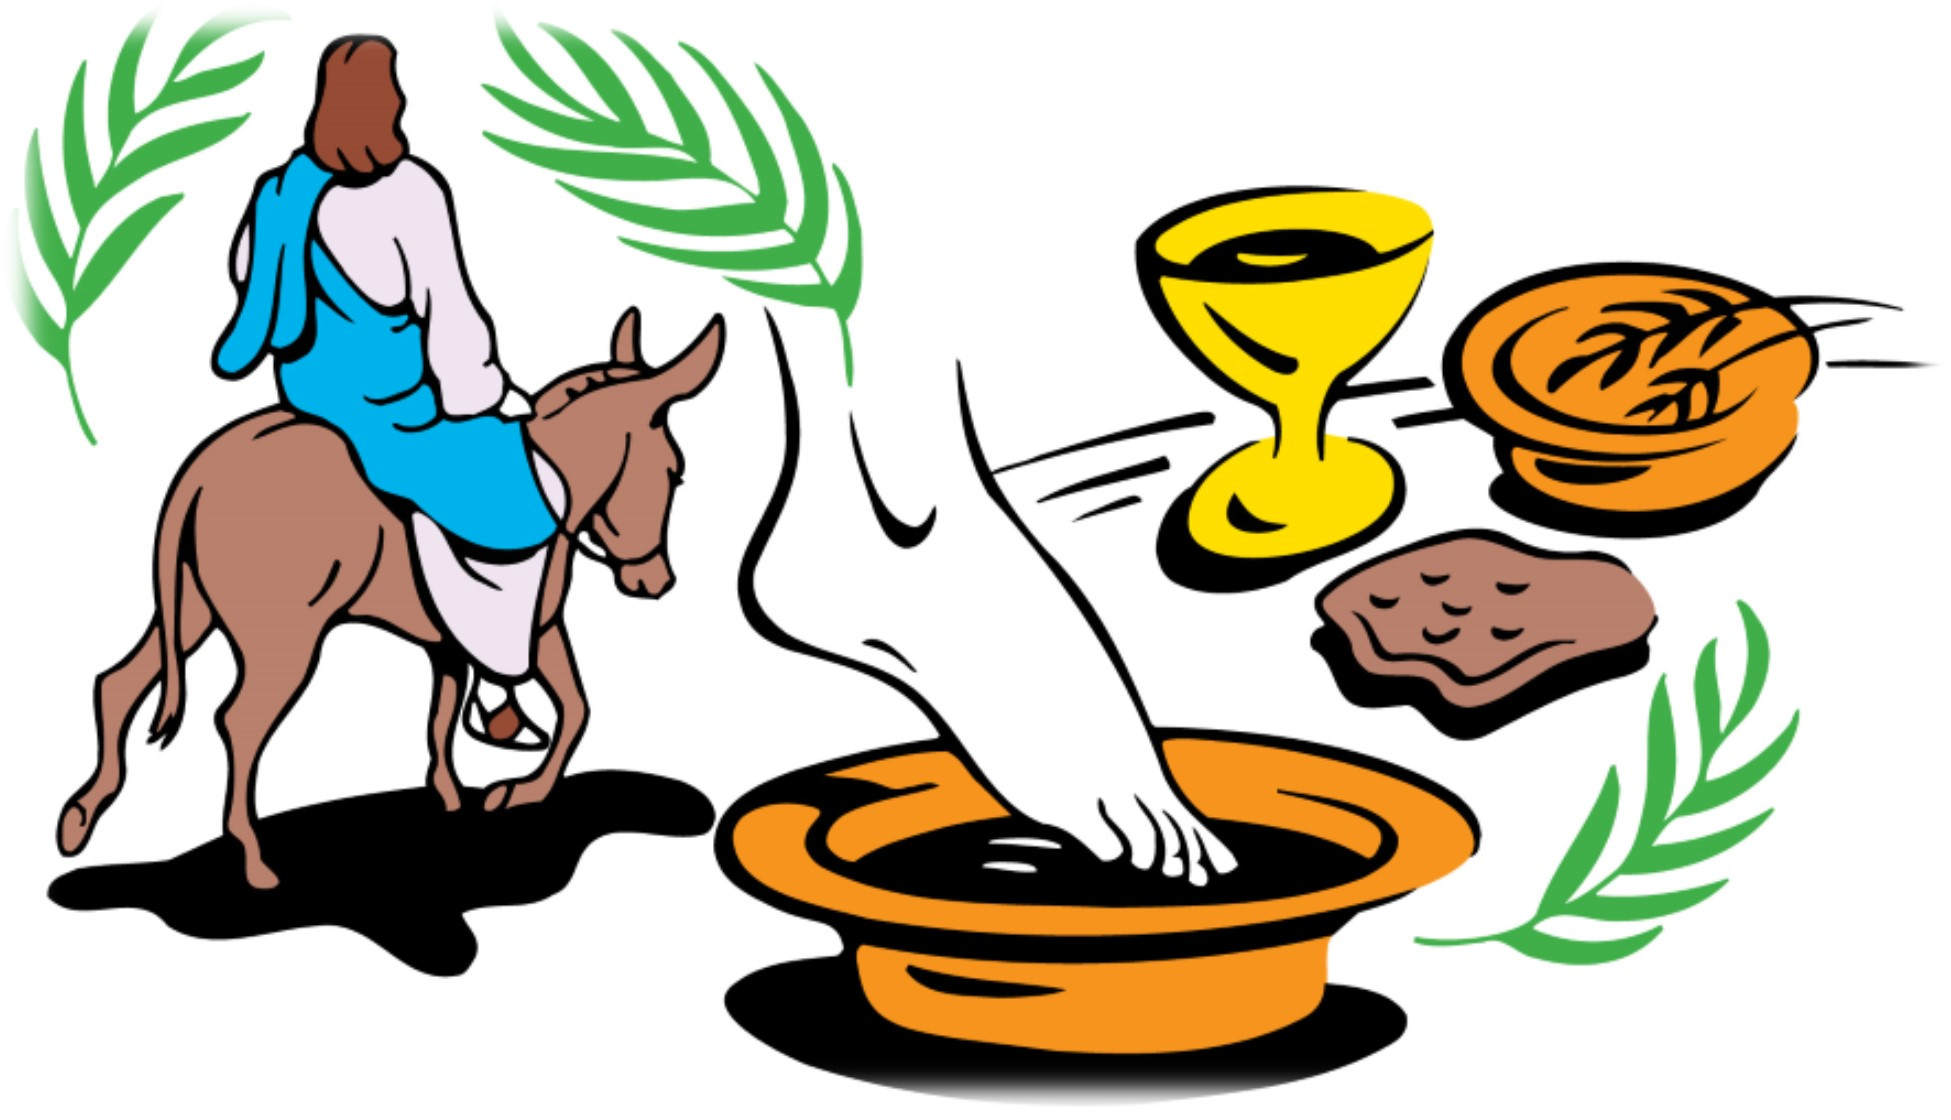 Holy week clipart happy. Wednesday in walking together